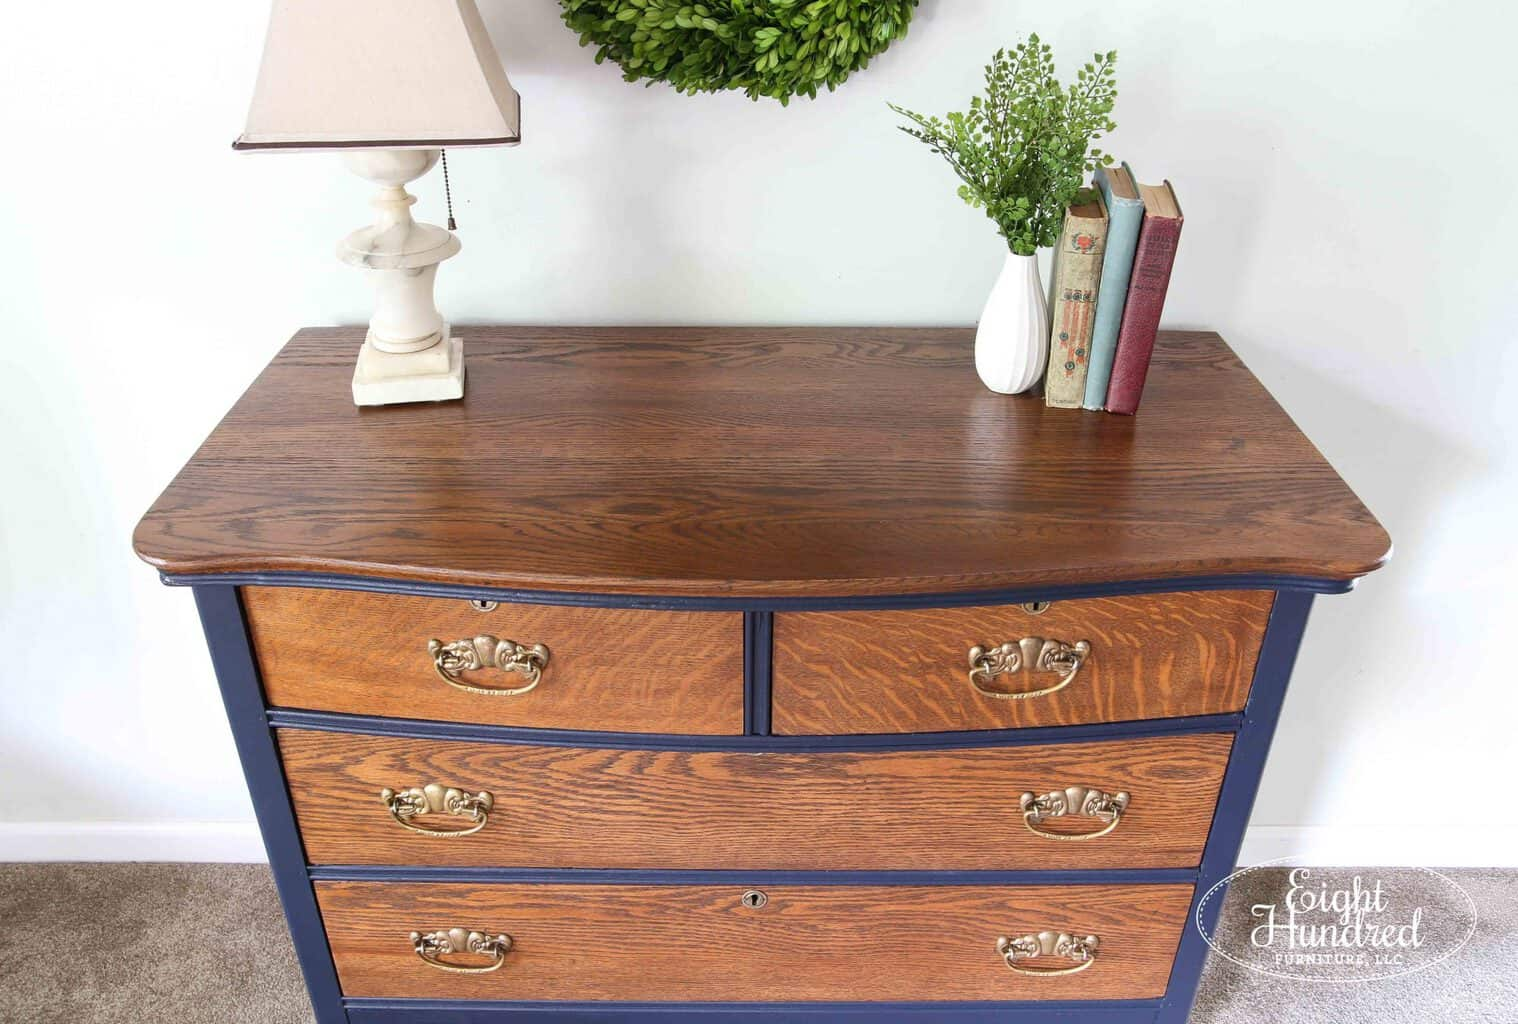 Refinished top in General Finishes Antique Walnut Gel Stain